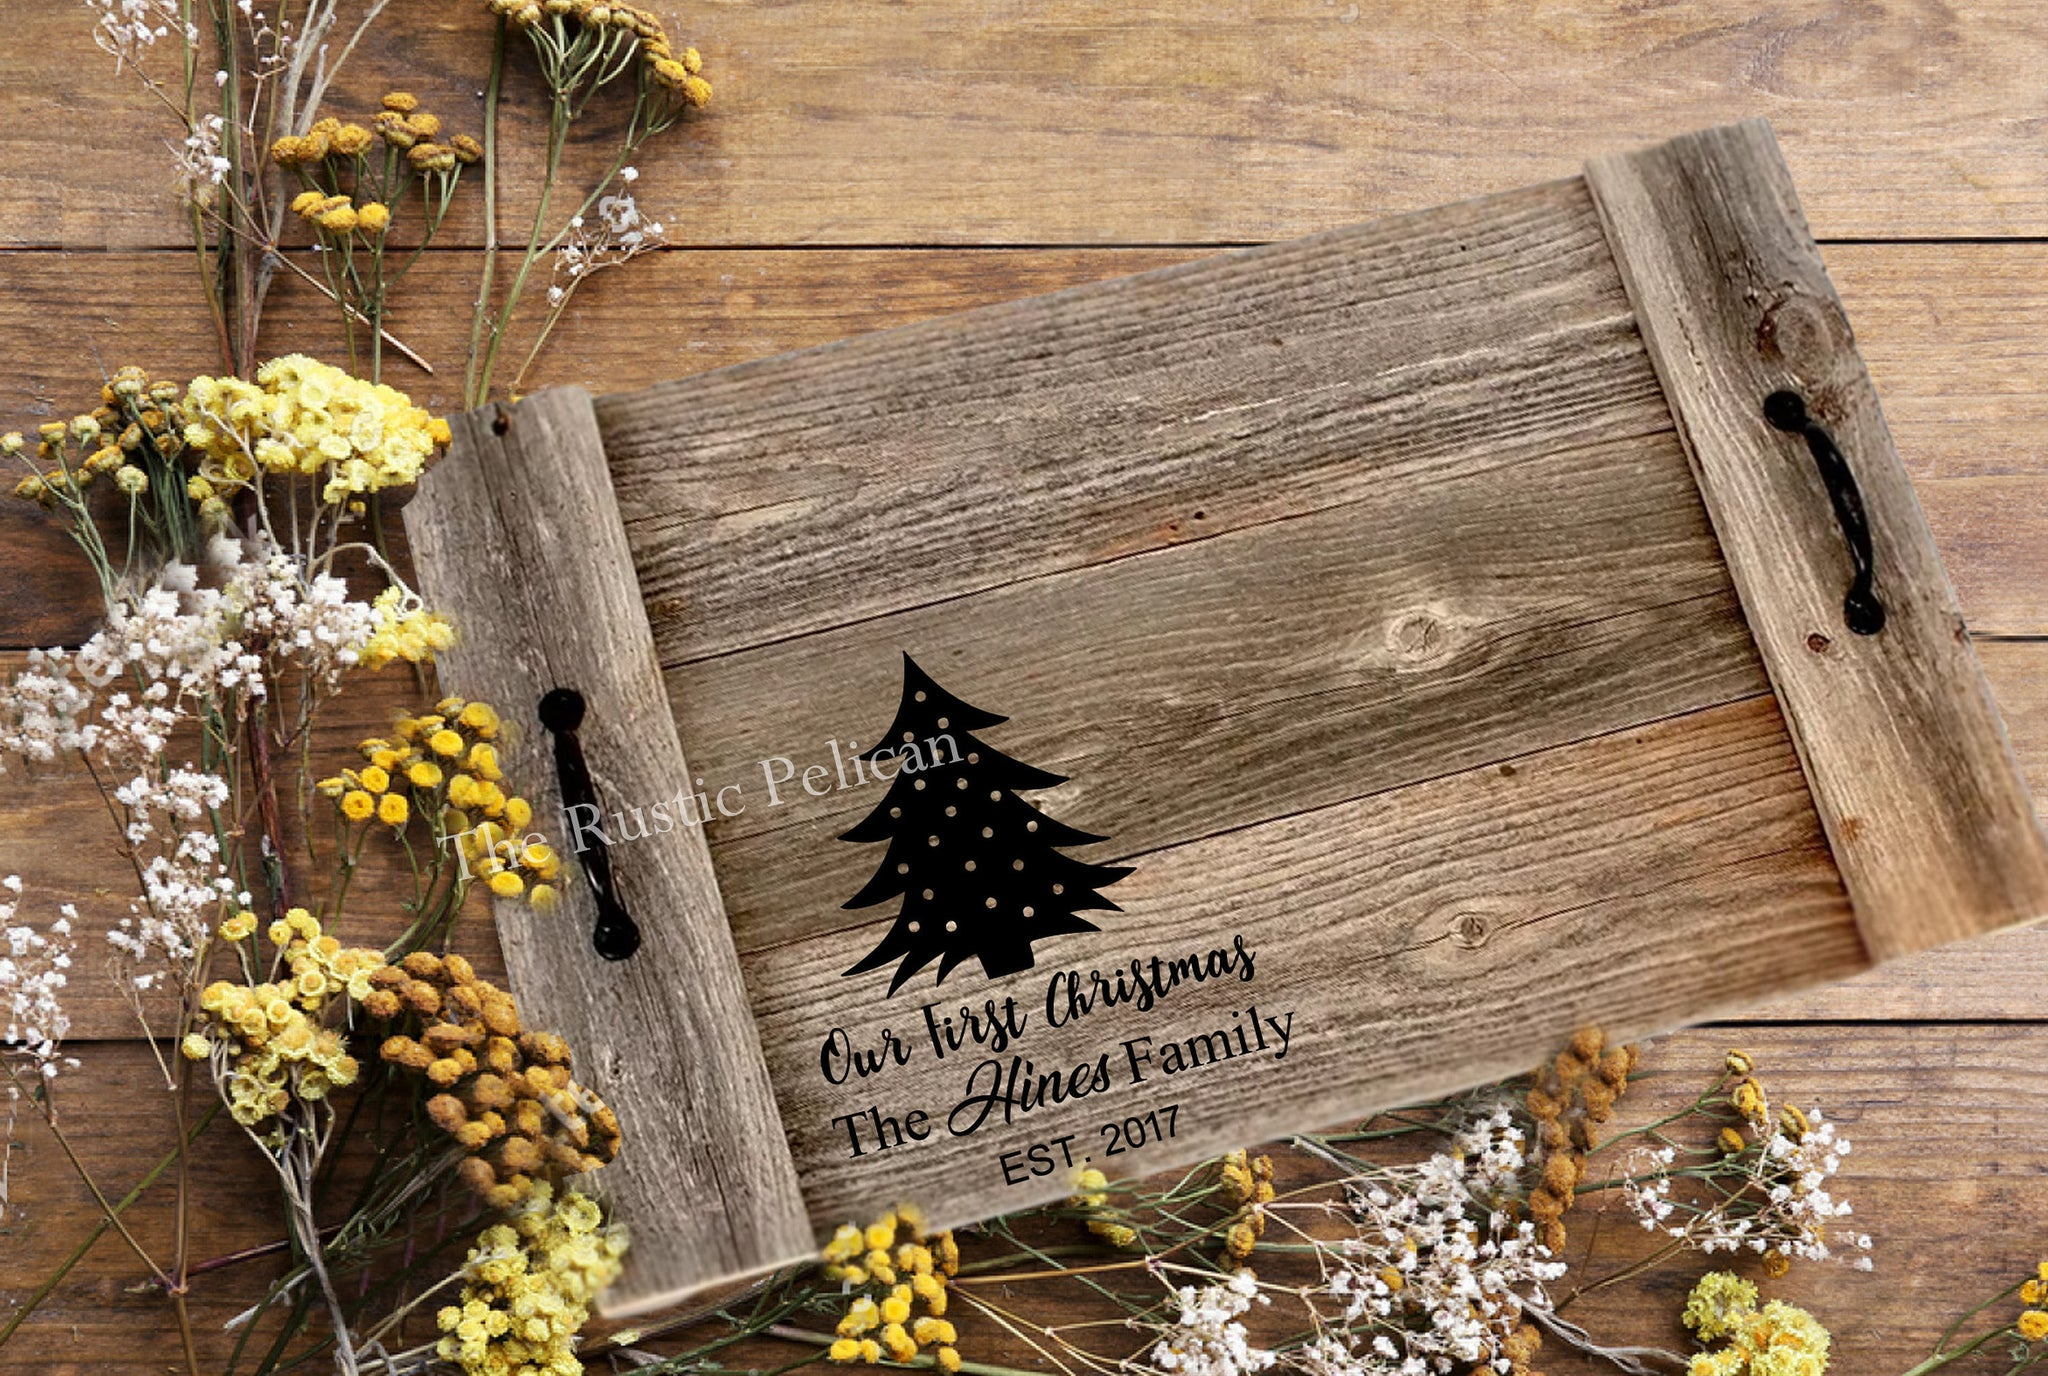 Rustic Personalized Wooden Tray Farmhouse Home Decor First Christmas The Rustic Pelican